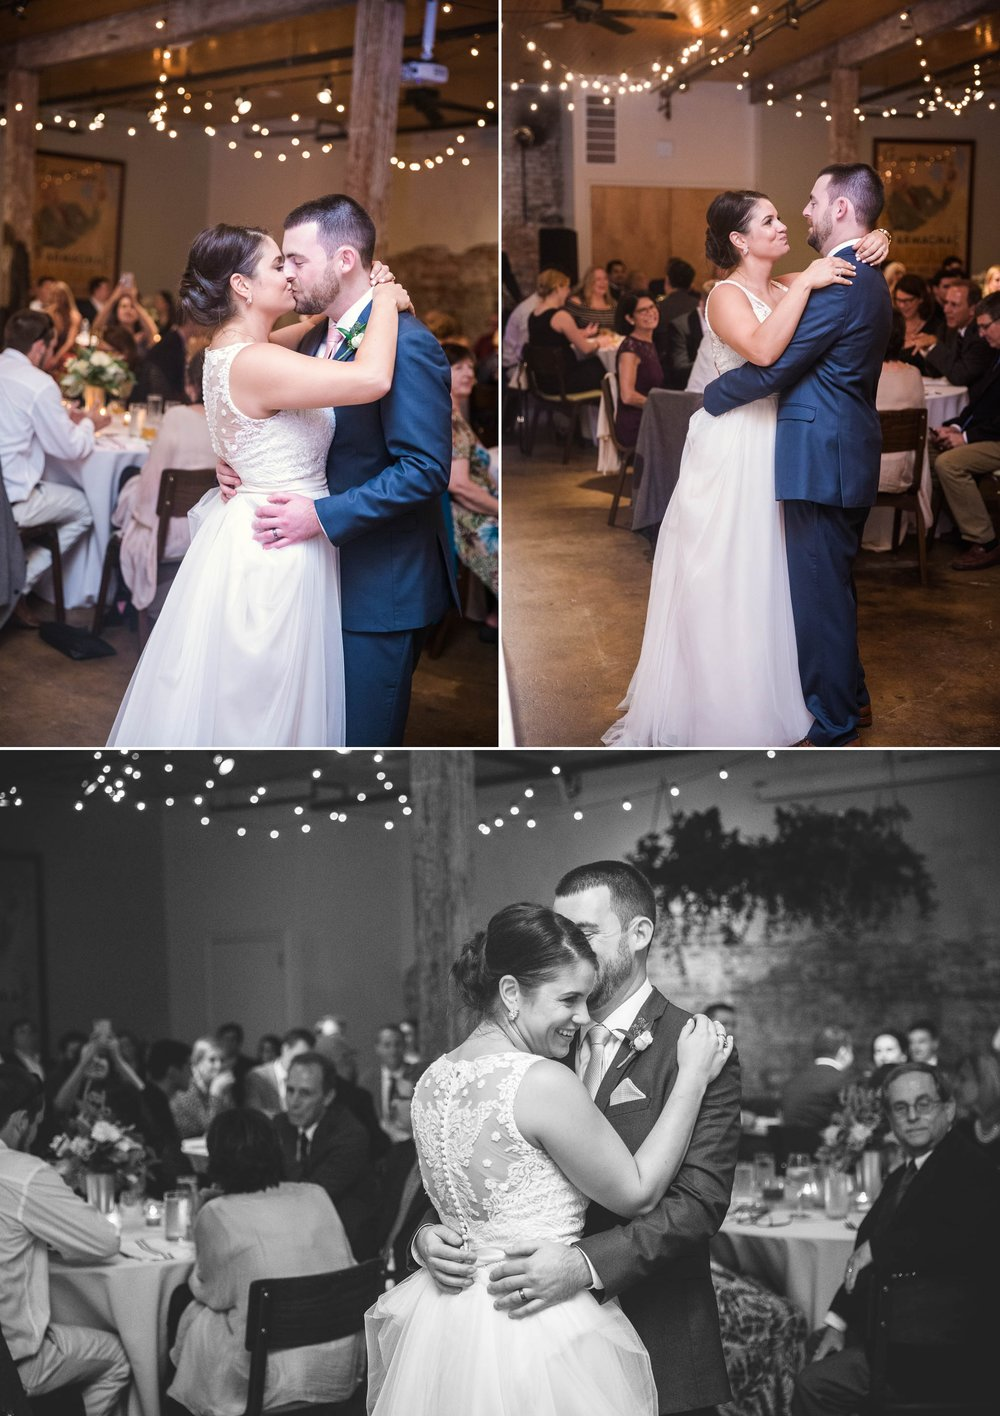 First Dance between Bride and Groom in an industrial downtown venue - Clare + Wallace - The Jiddy Space - Raleigh North Carolina Wedding Photographer